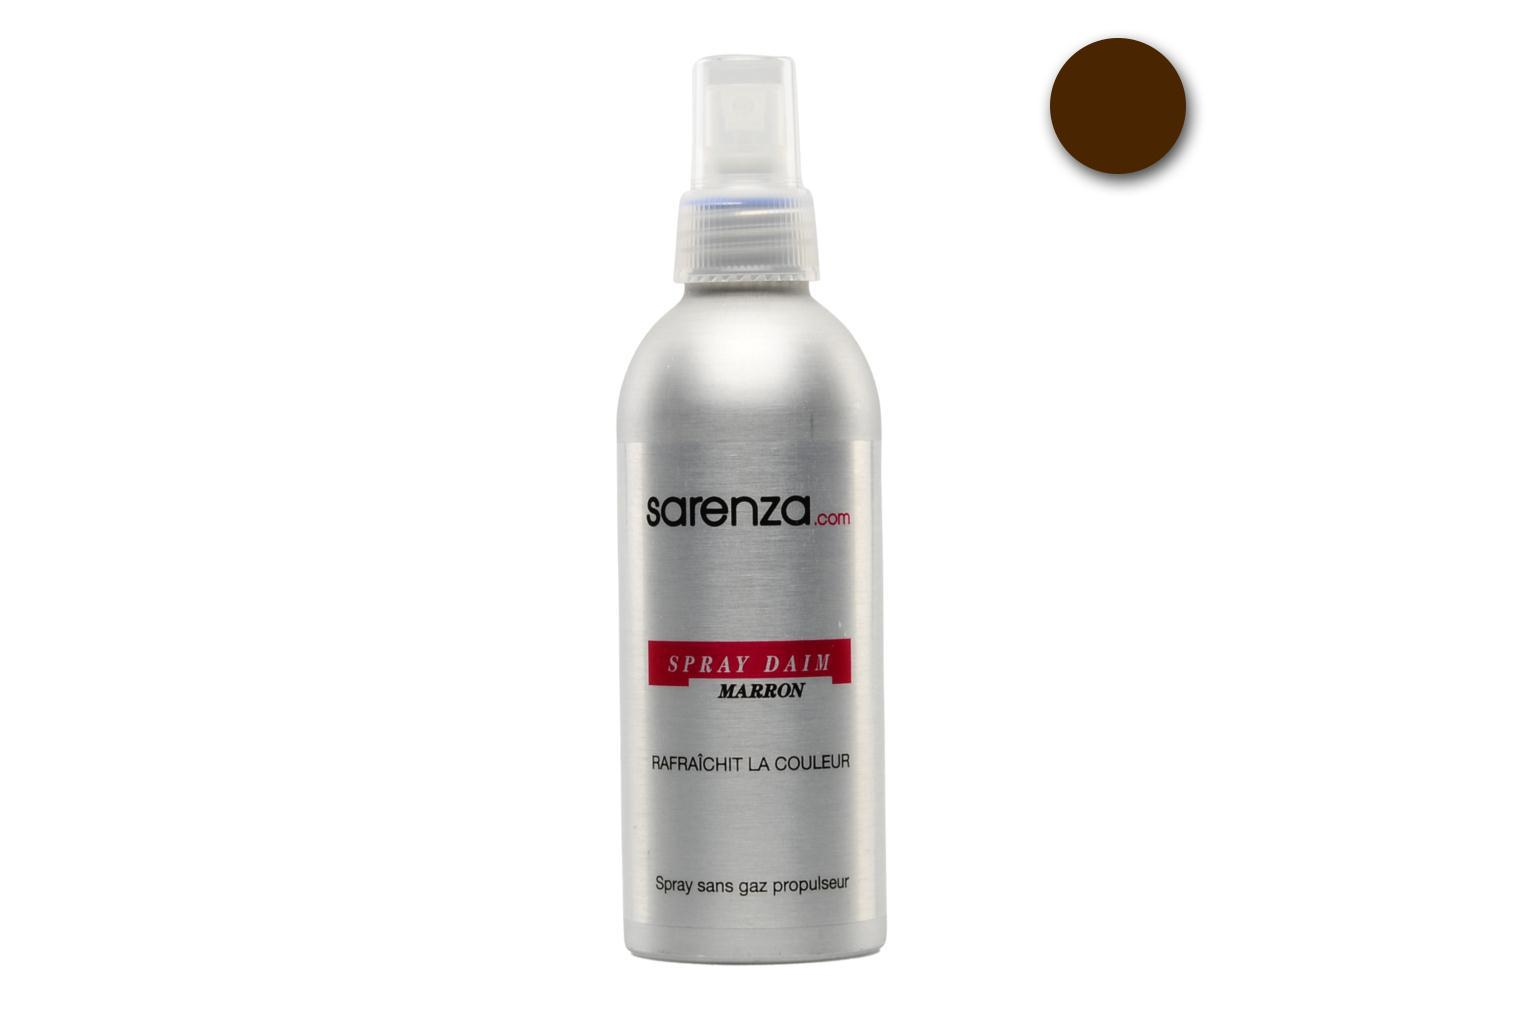 Wildleder Reiniger 200ml-Spray in braun (marron) oder schwarz (noir). marron